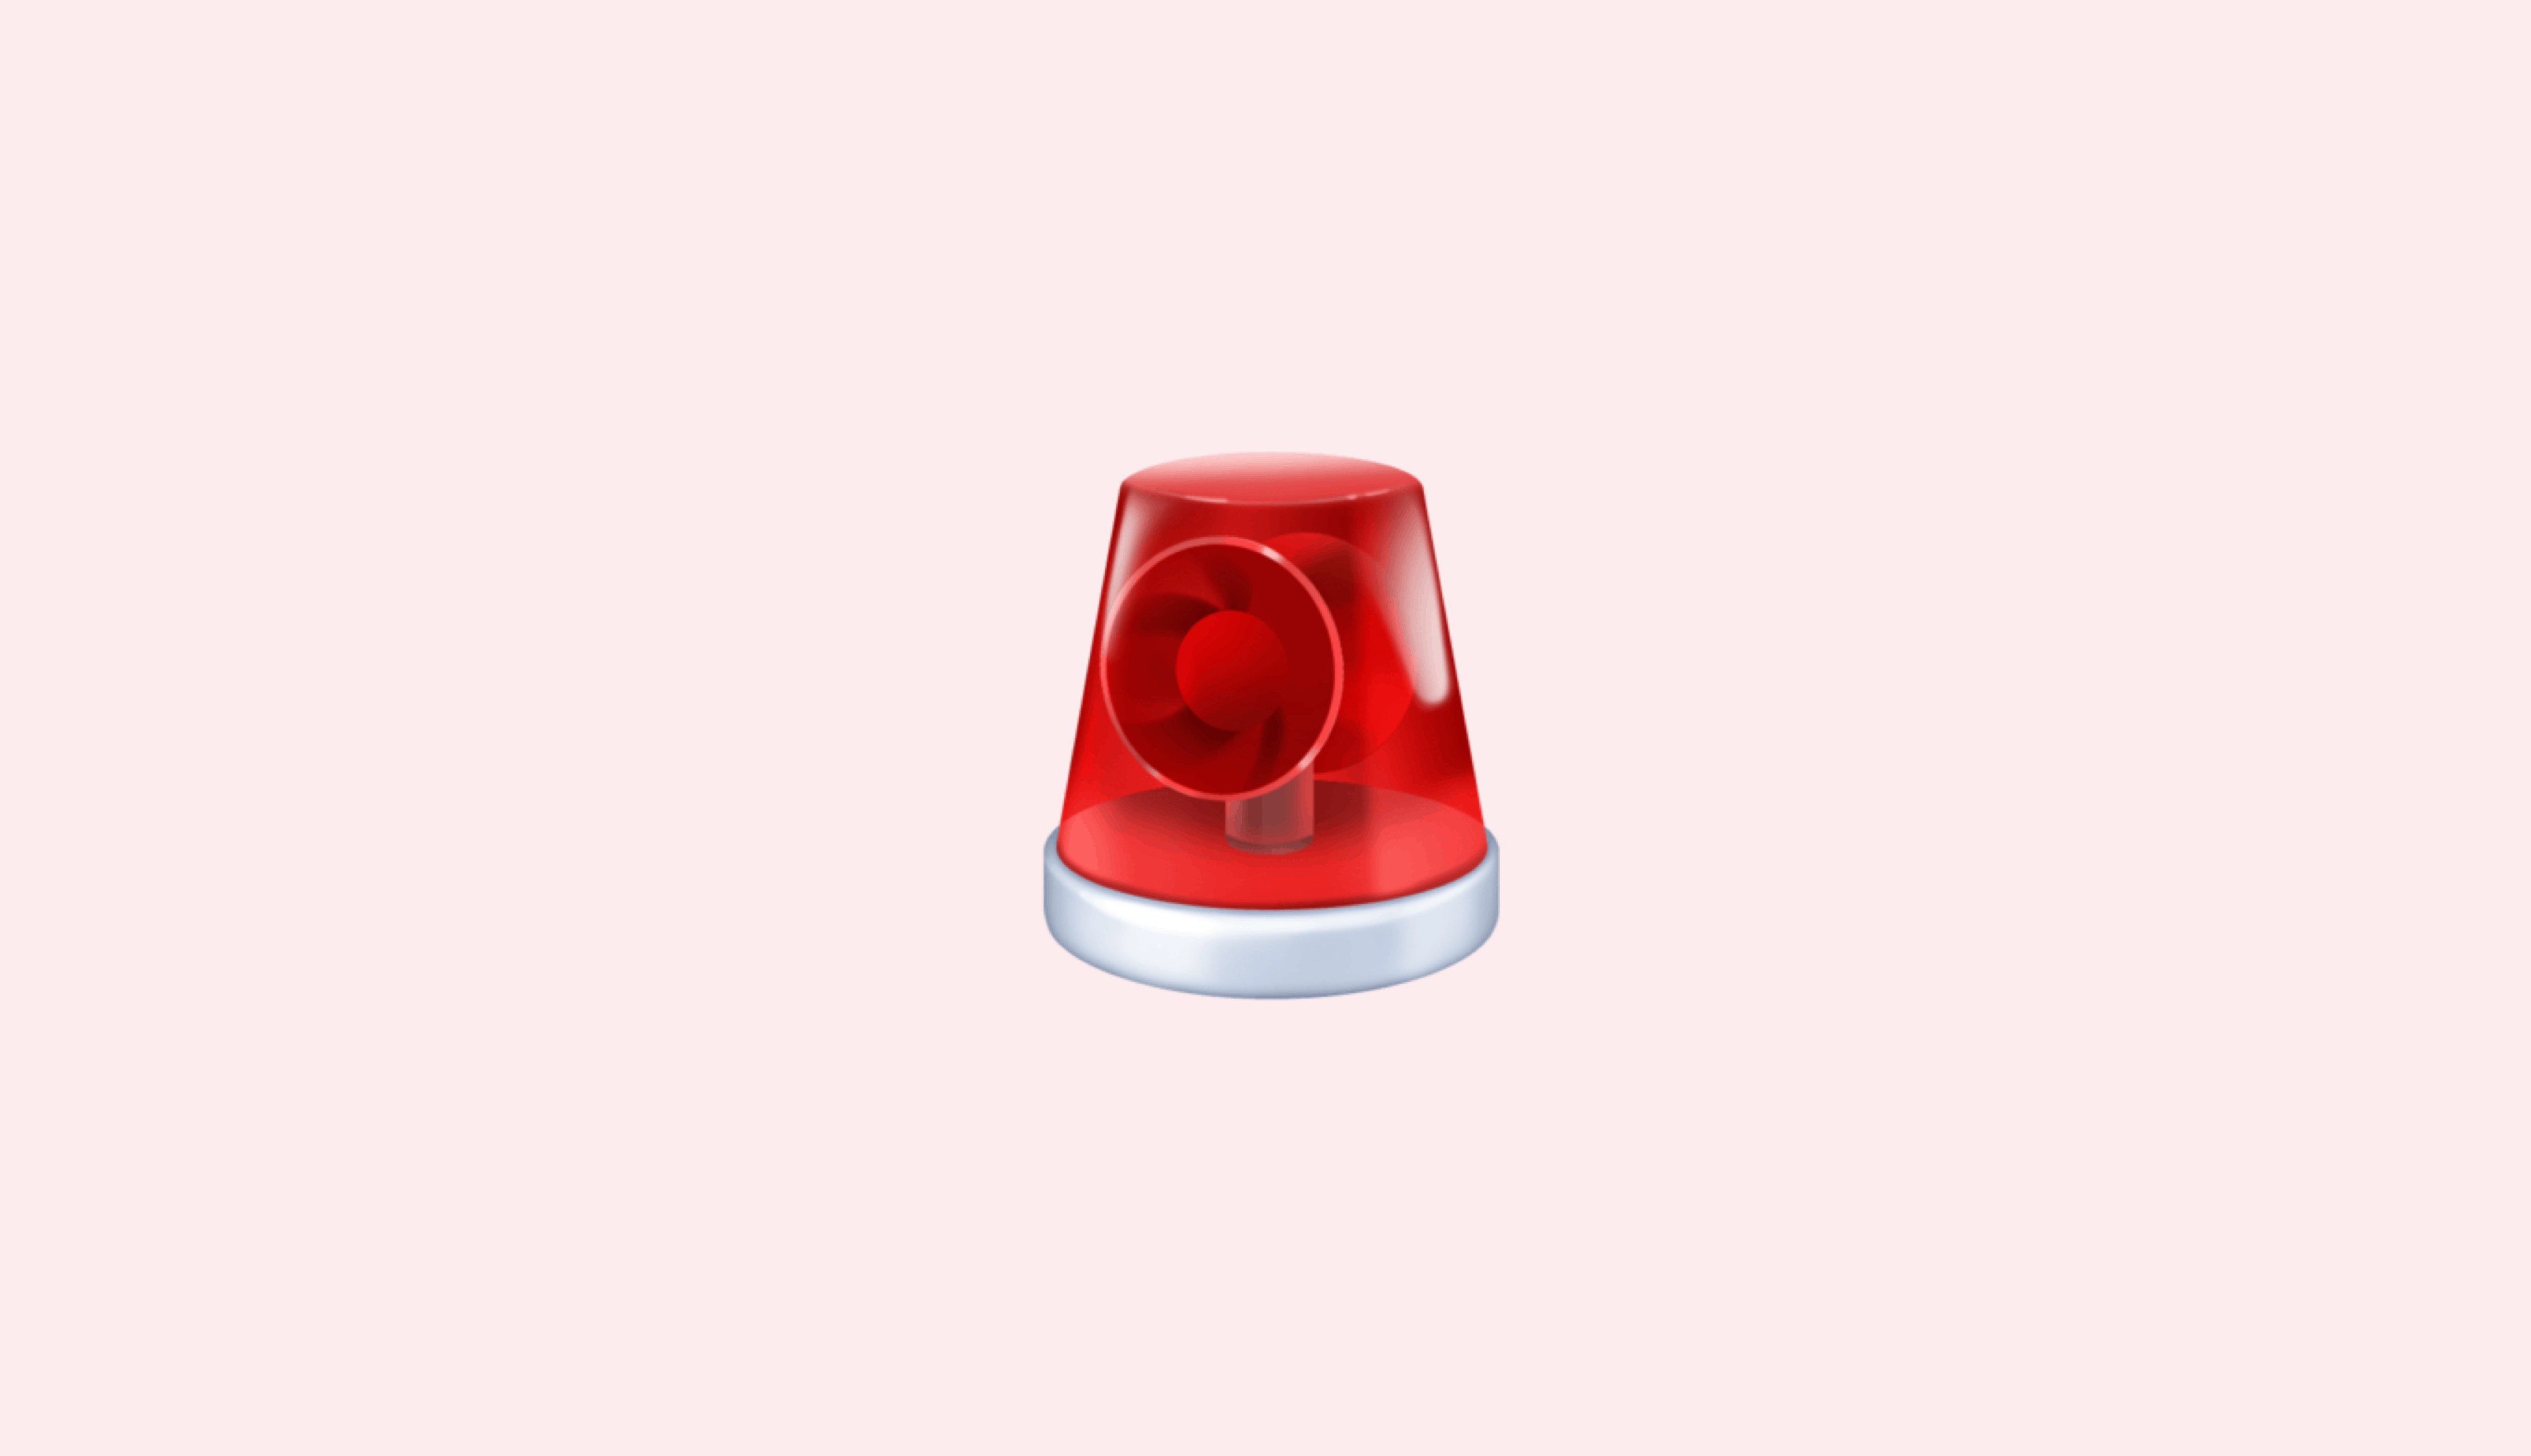 Title: Should I Use My HSA As an Emergency Fund? Graphic: red emoji siren